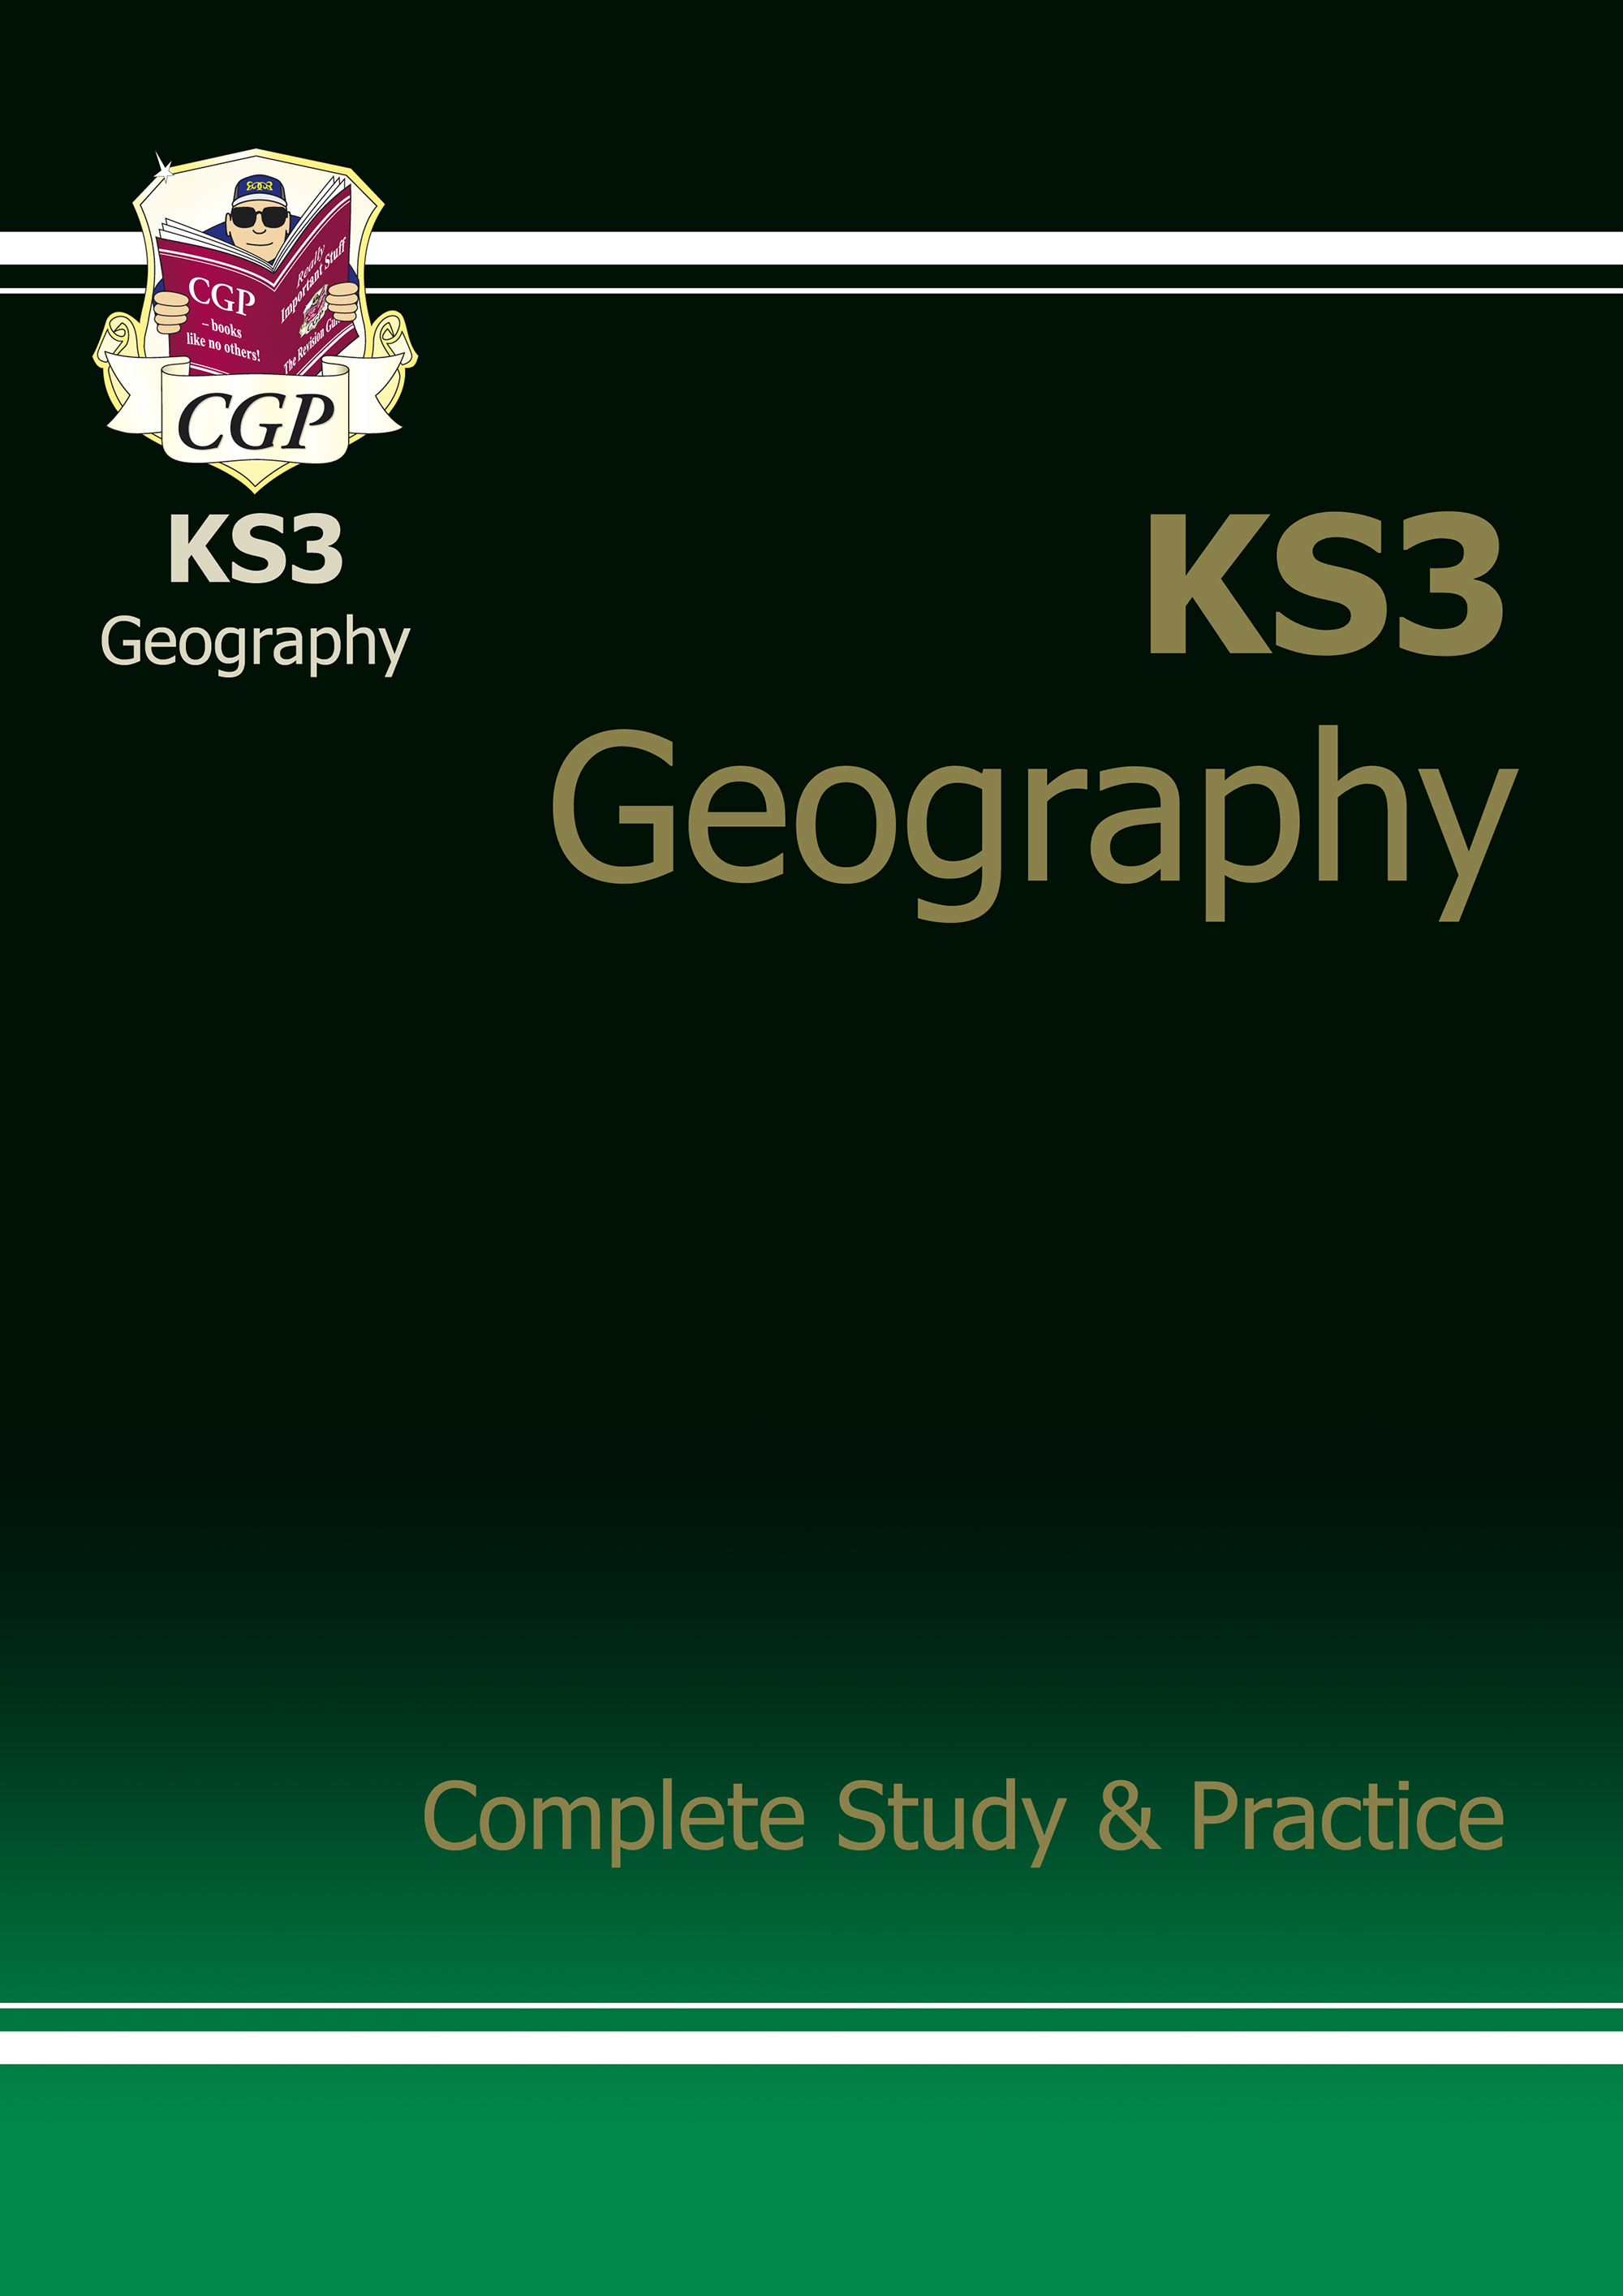 GHS33 - KS3 Geography Complete Study & Practice